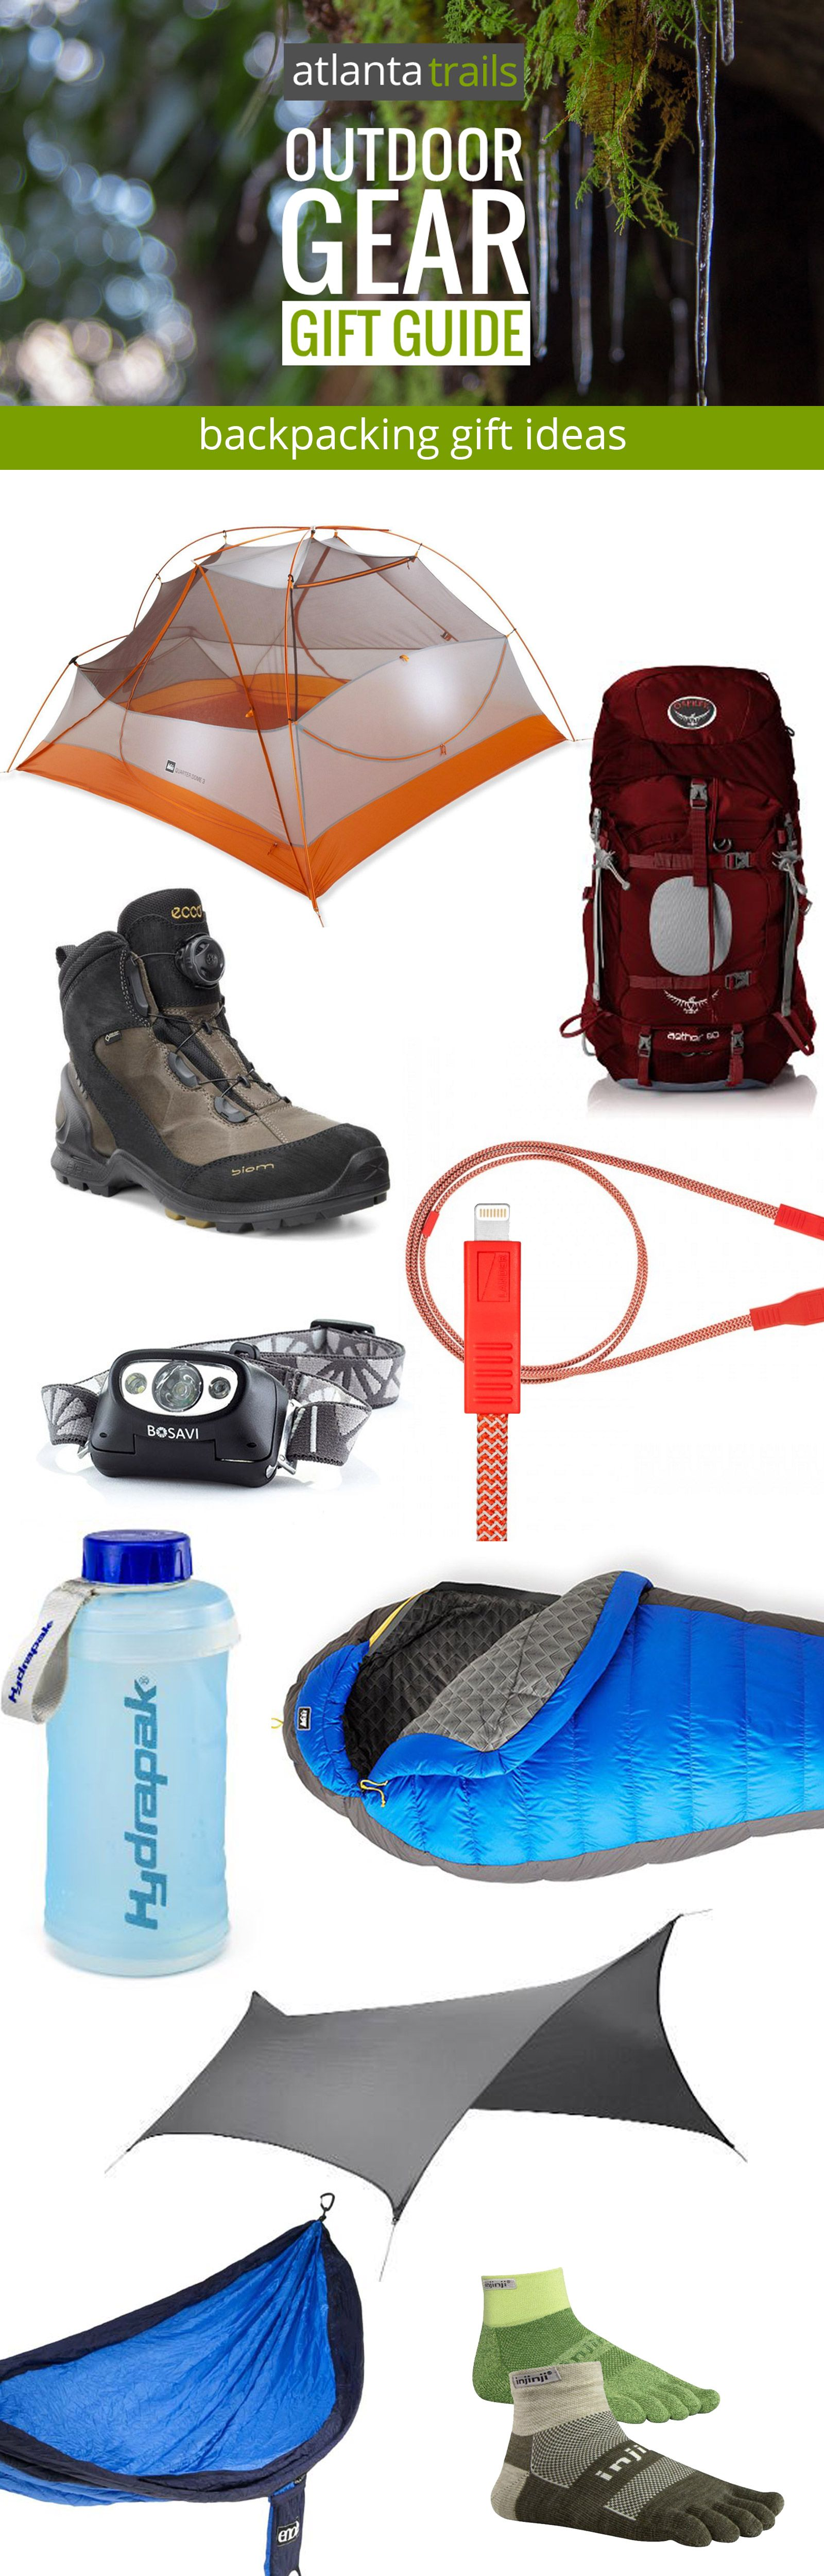 Our backpacking gift guide features our trail-tested favorite backpacking  gear 136377c86efc3